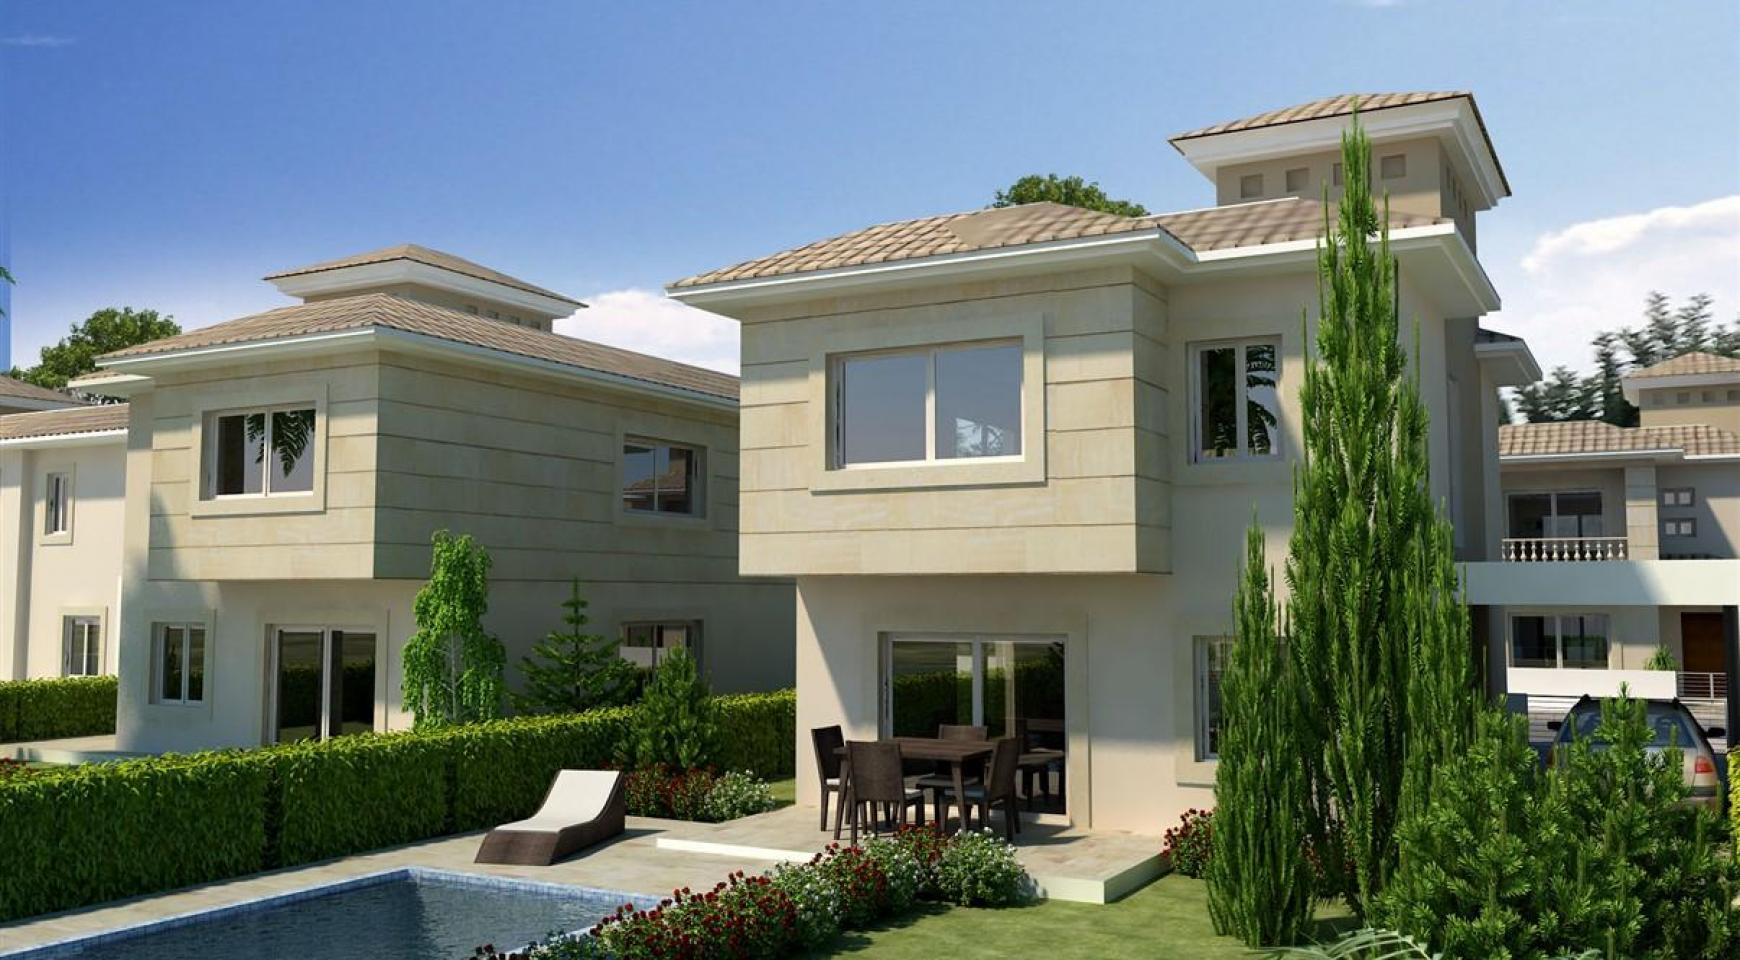 3 Bedroom Villa in New Project in Paphos - 13